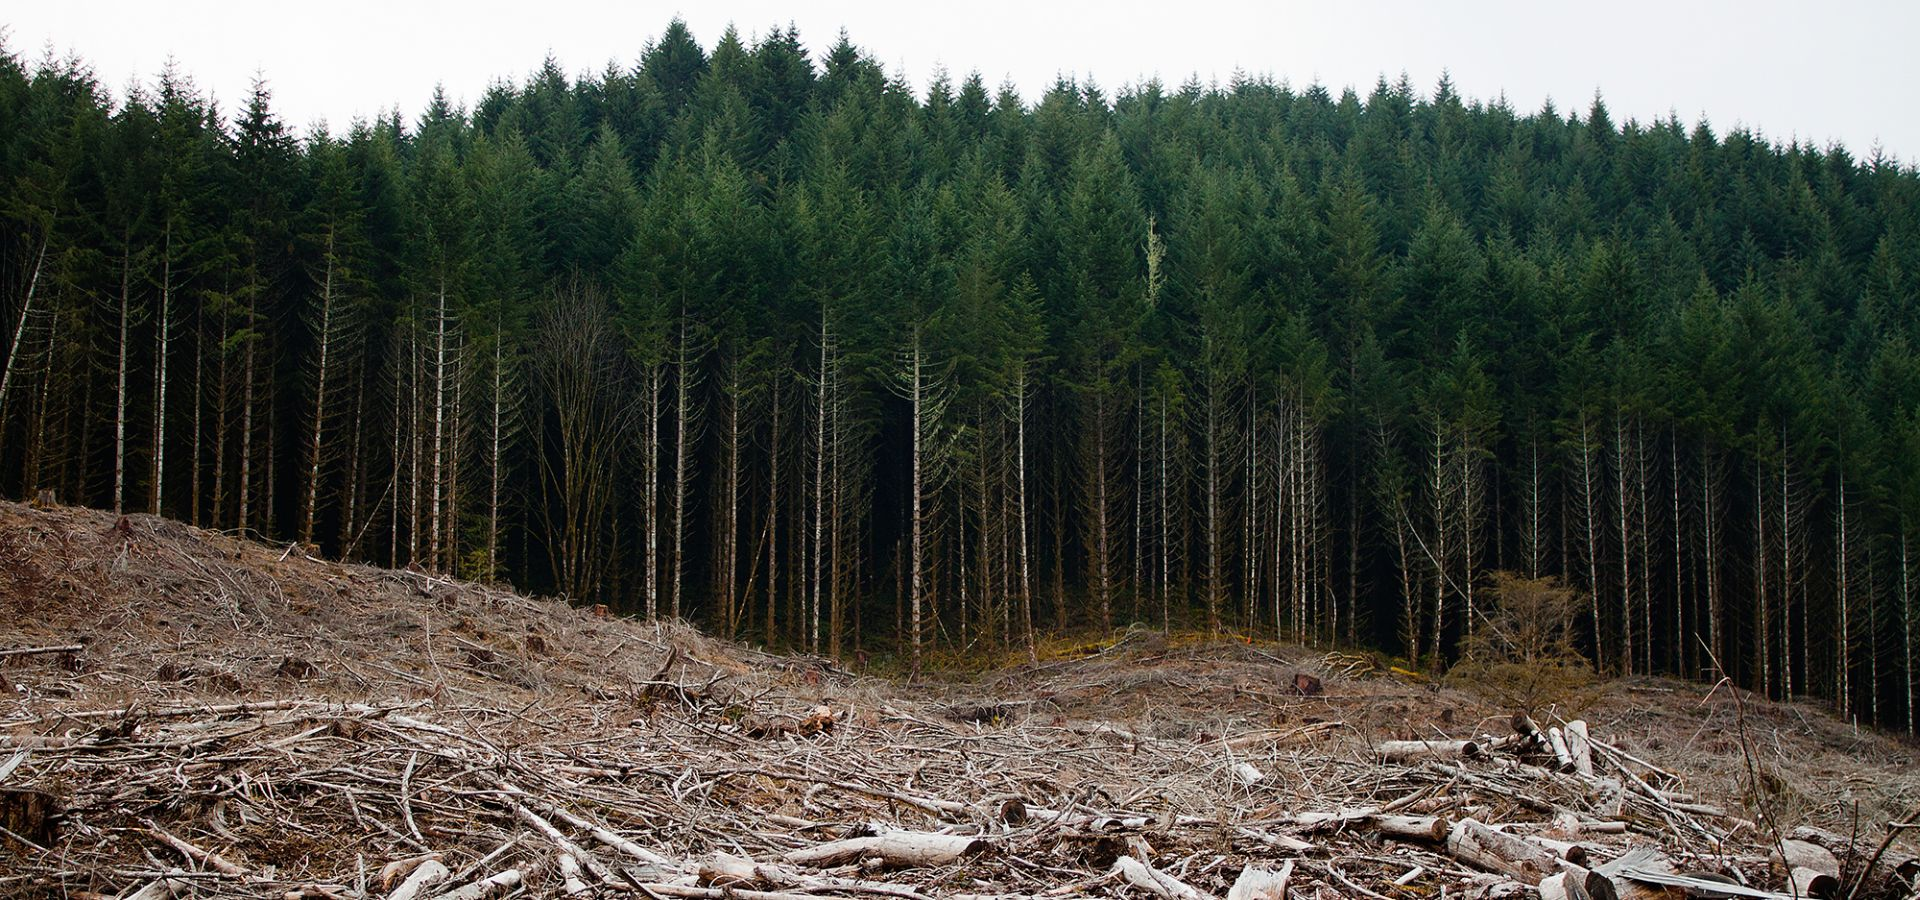 Clear-cut forests in Oregon